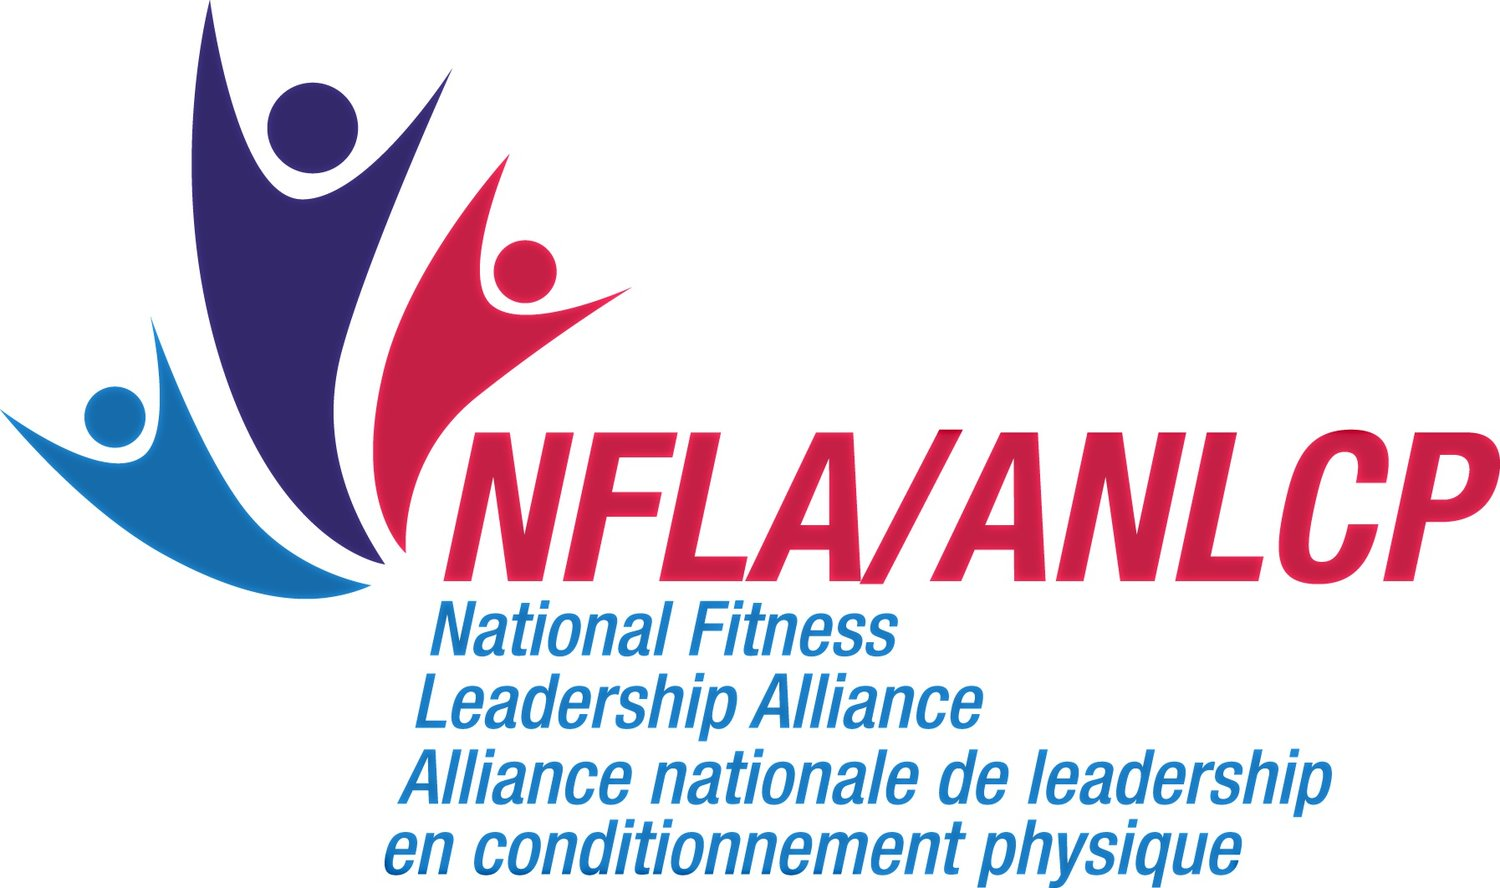 National Fitness Leadership Alliance of Canada